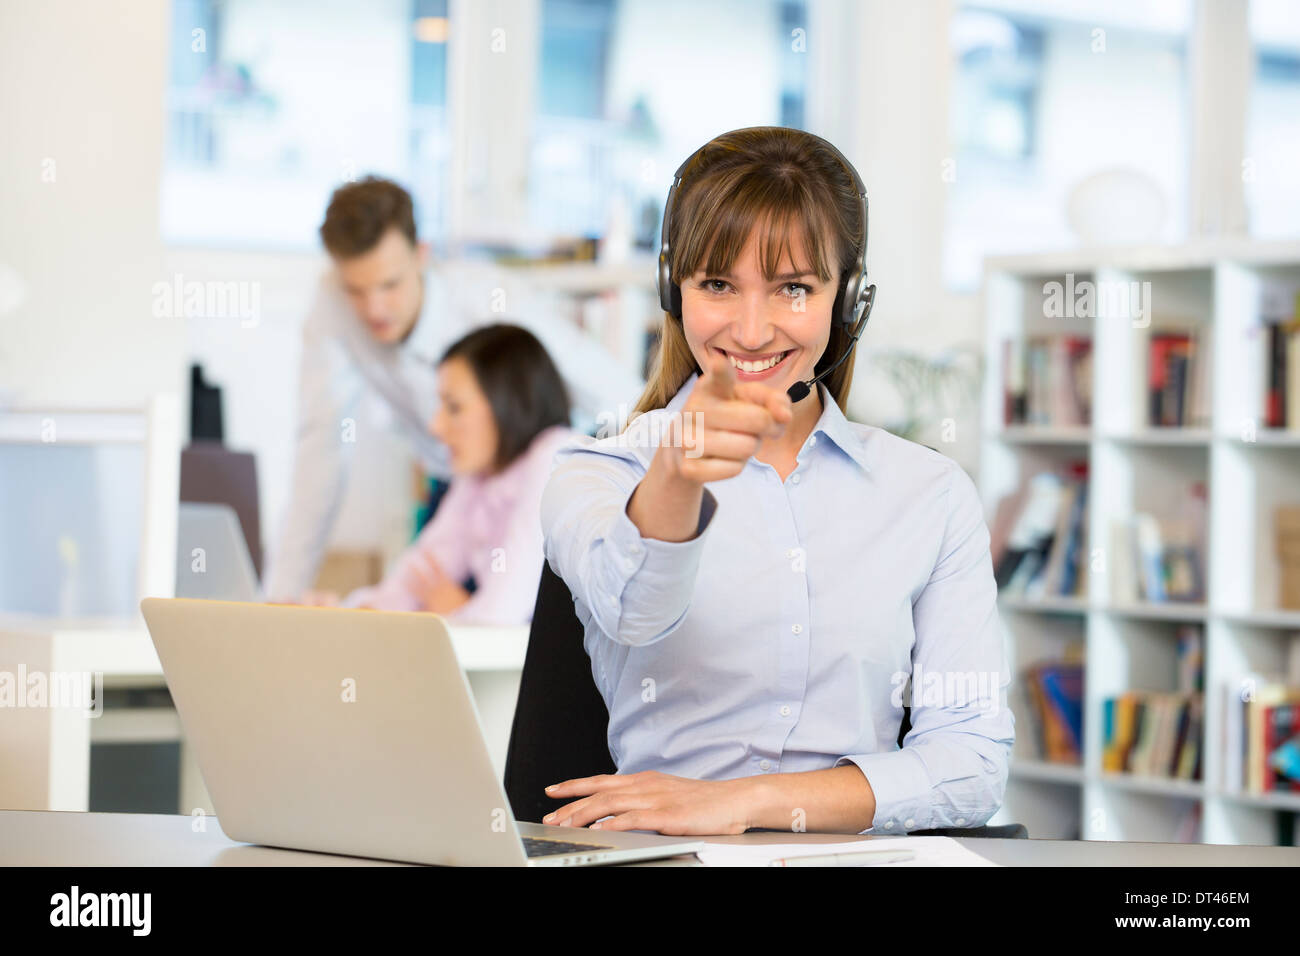 Happy business woman desk smiling point finger computer Stock Photo